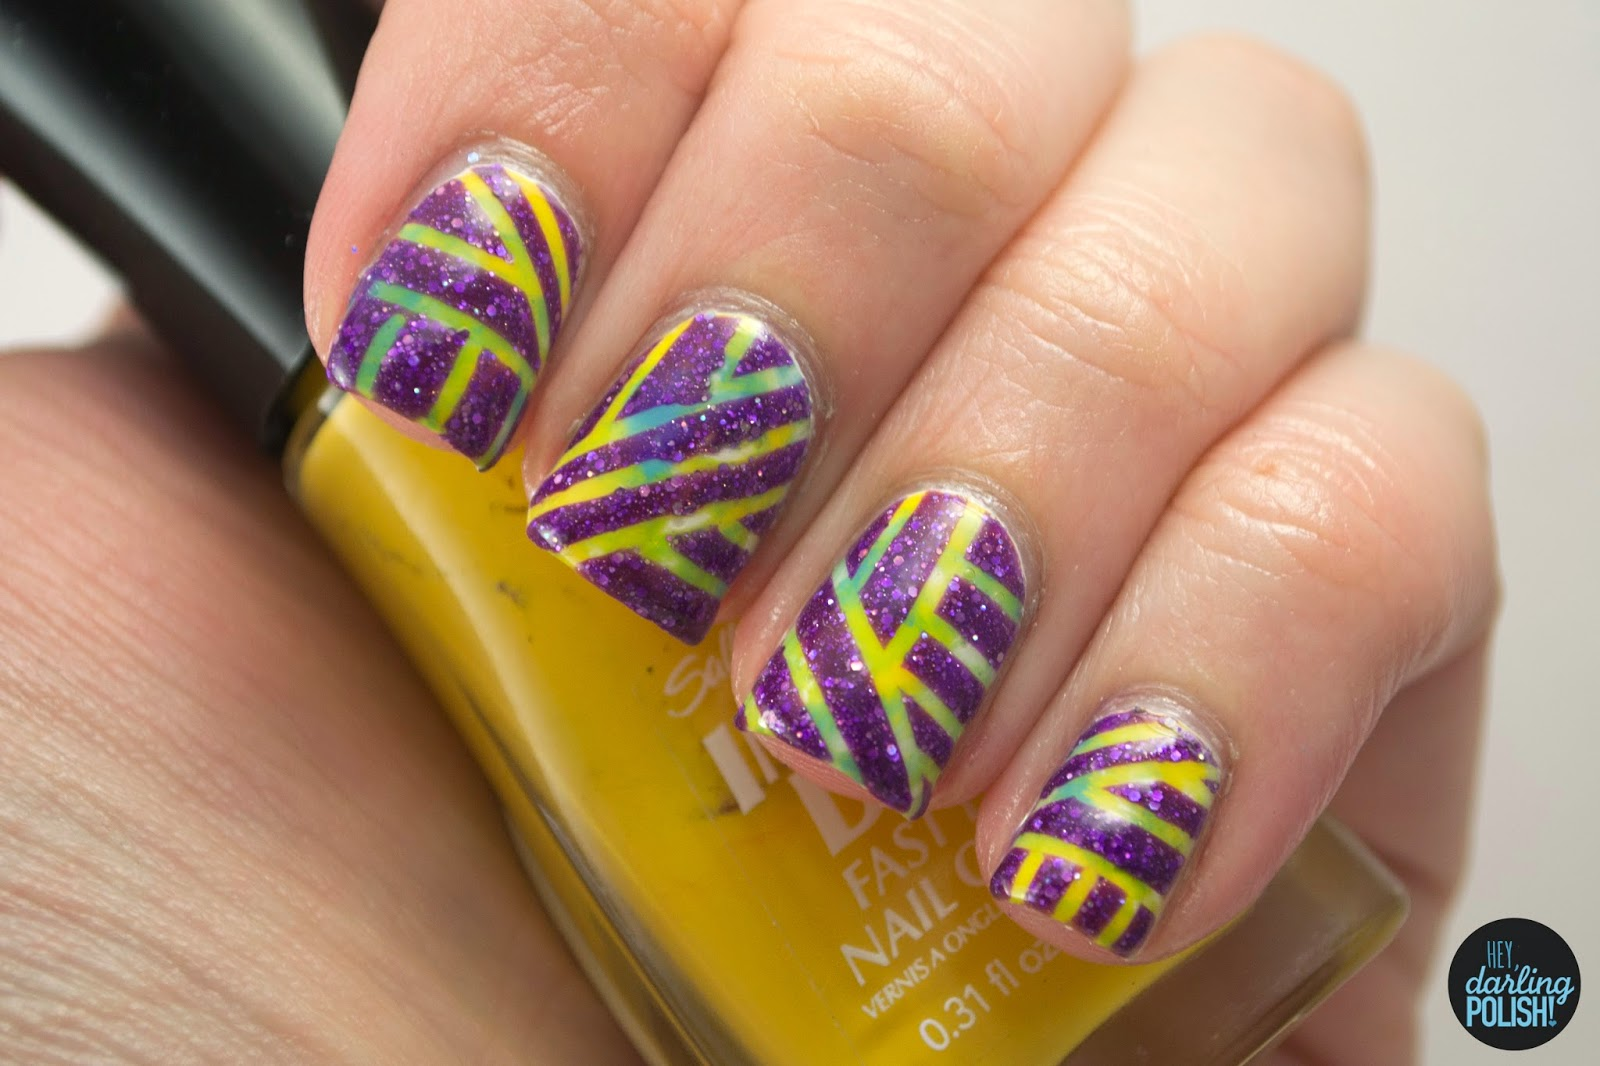 nails, nail art, nail polish, stripes, purple, yellow, blue, green, hey darling polish, striping tape, pipe dream polish